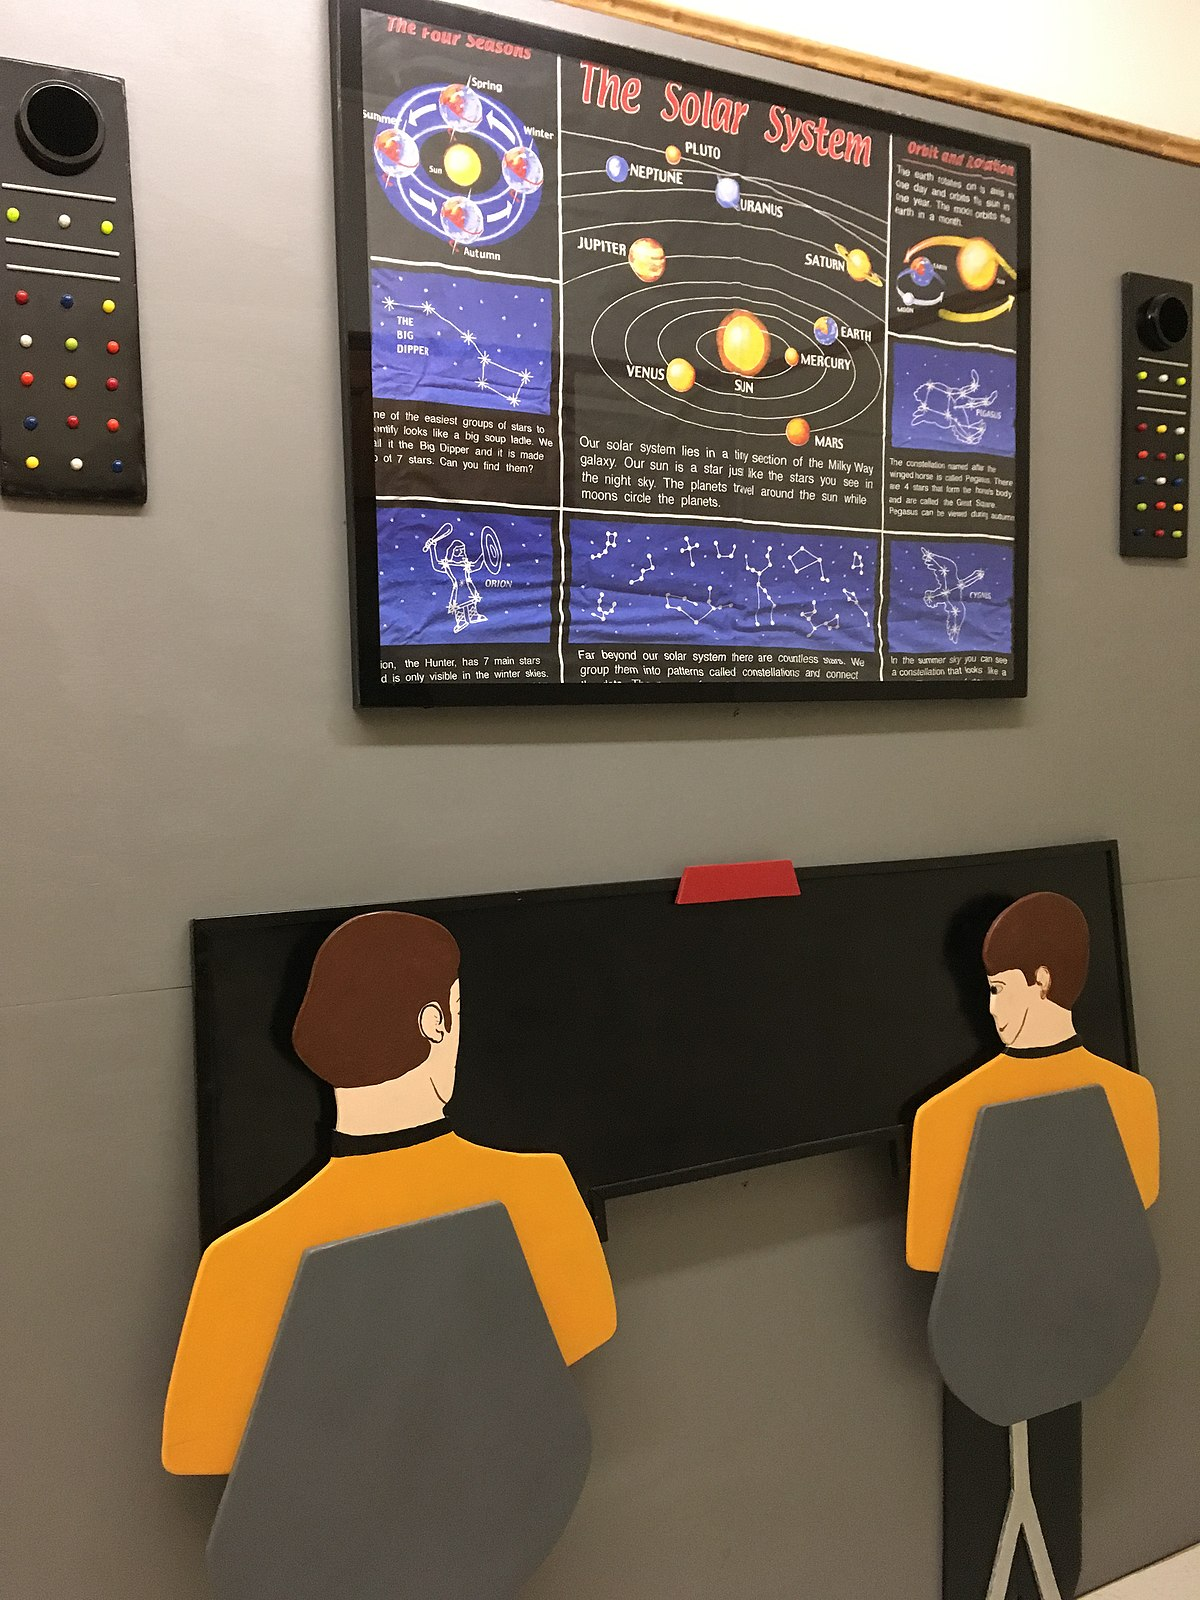 File Star Trek Bathroom Art Jpg Wikimedia Commons